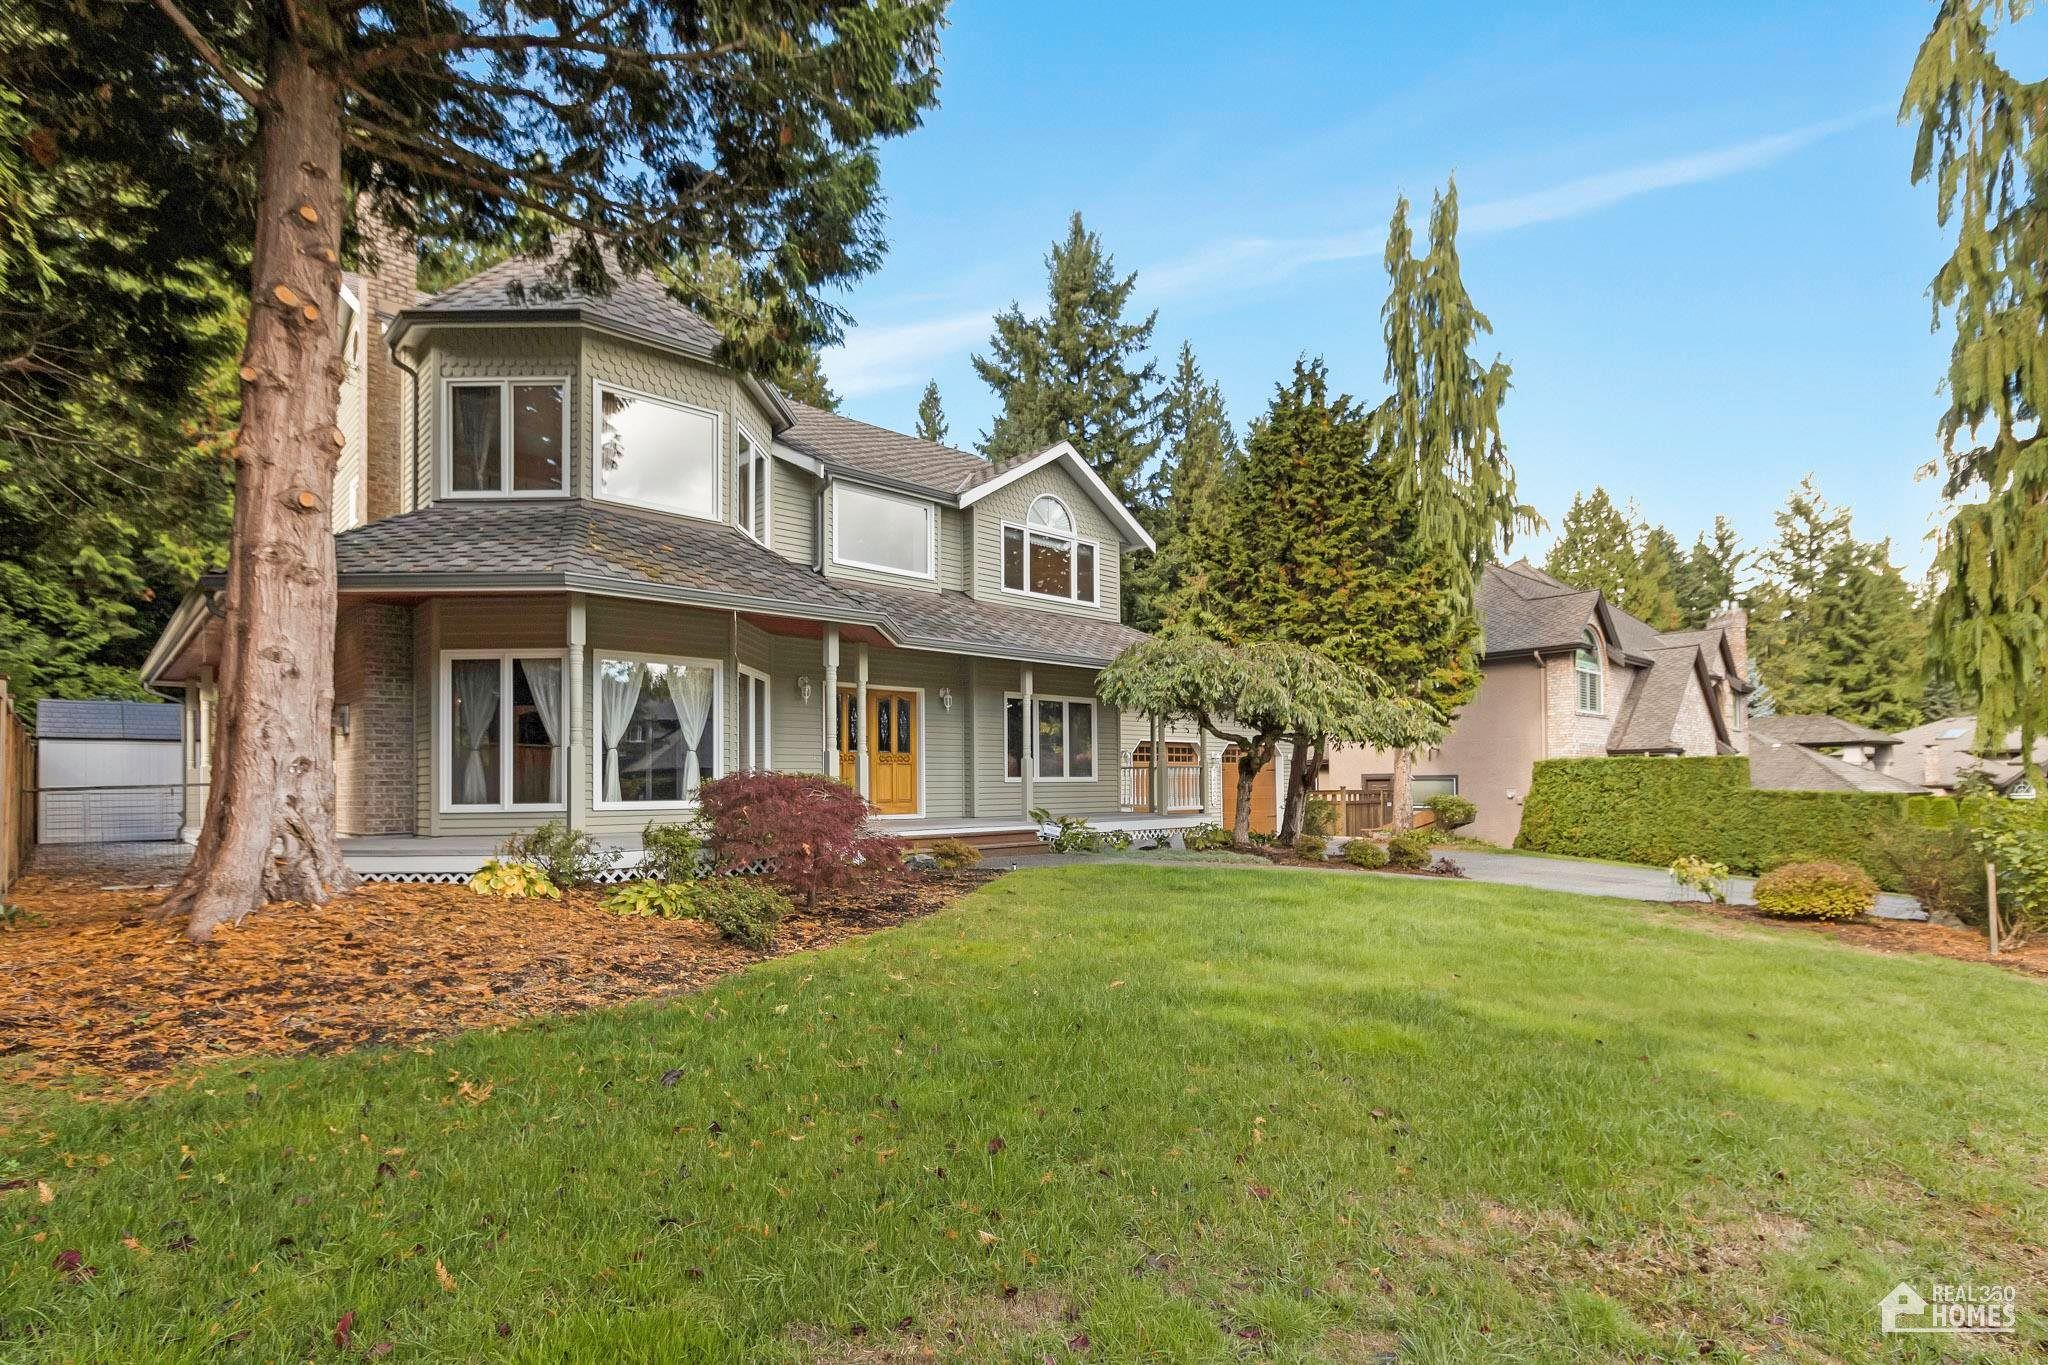 """Main Photo: 14209 31 Avenue in Surrey: Elgin Chantrell House for sale in """"ELGIN PARK"""" (South Surrey White Rock)  : MLS®# R2623145"""